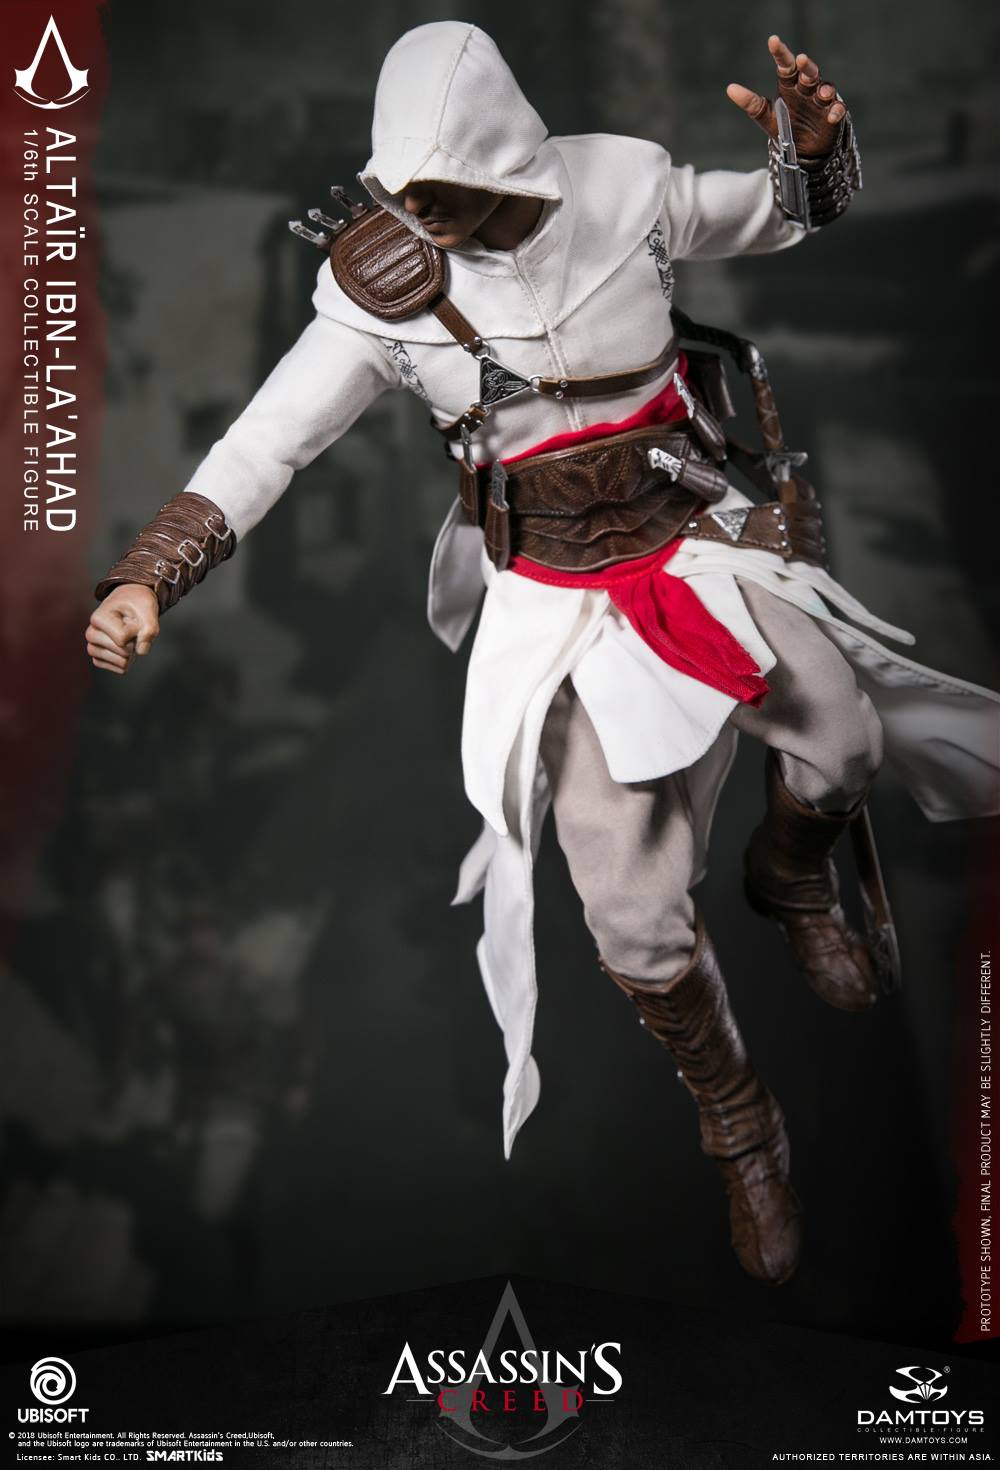 Assassin's creed 4 coupons